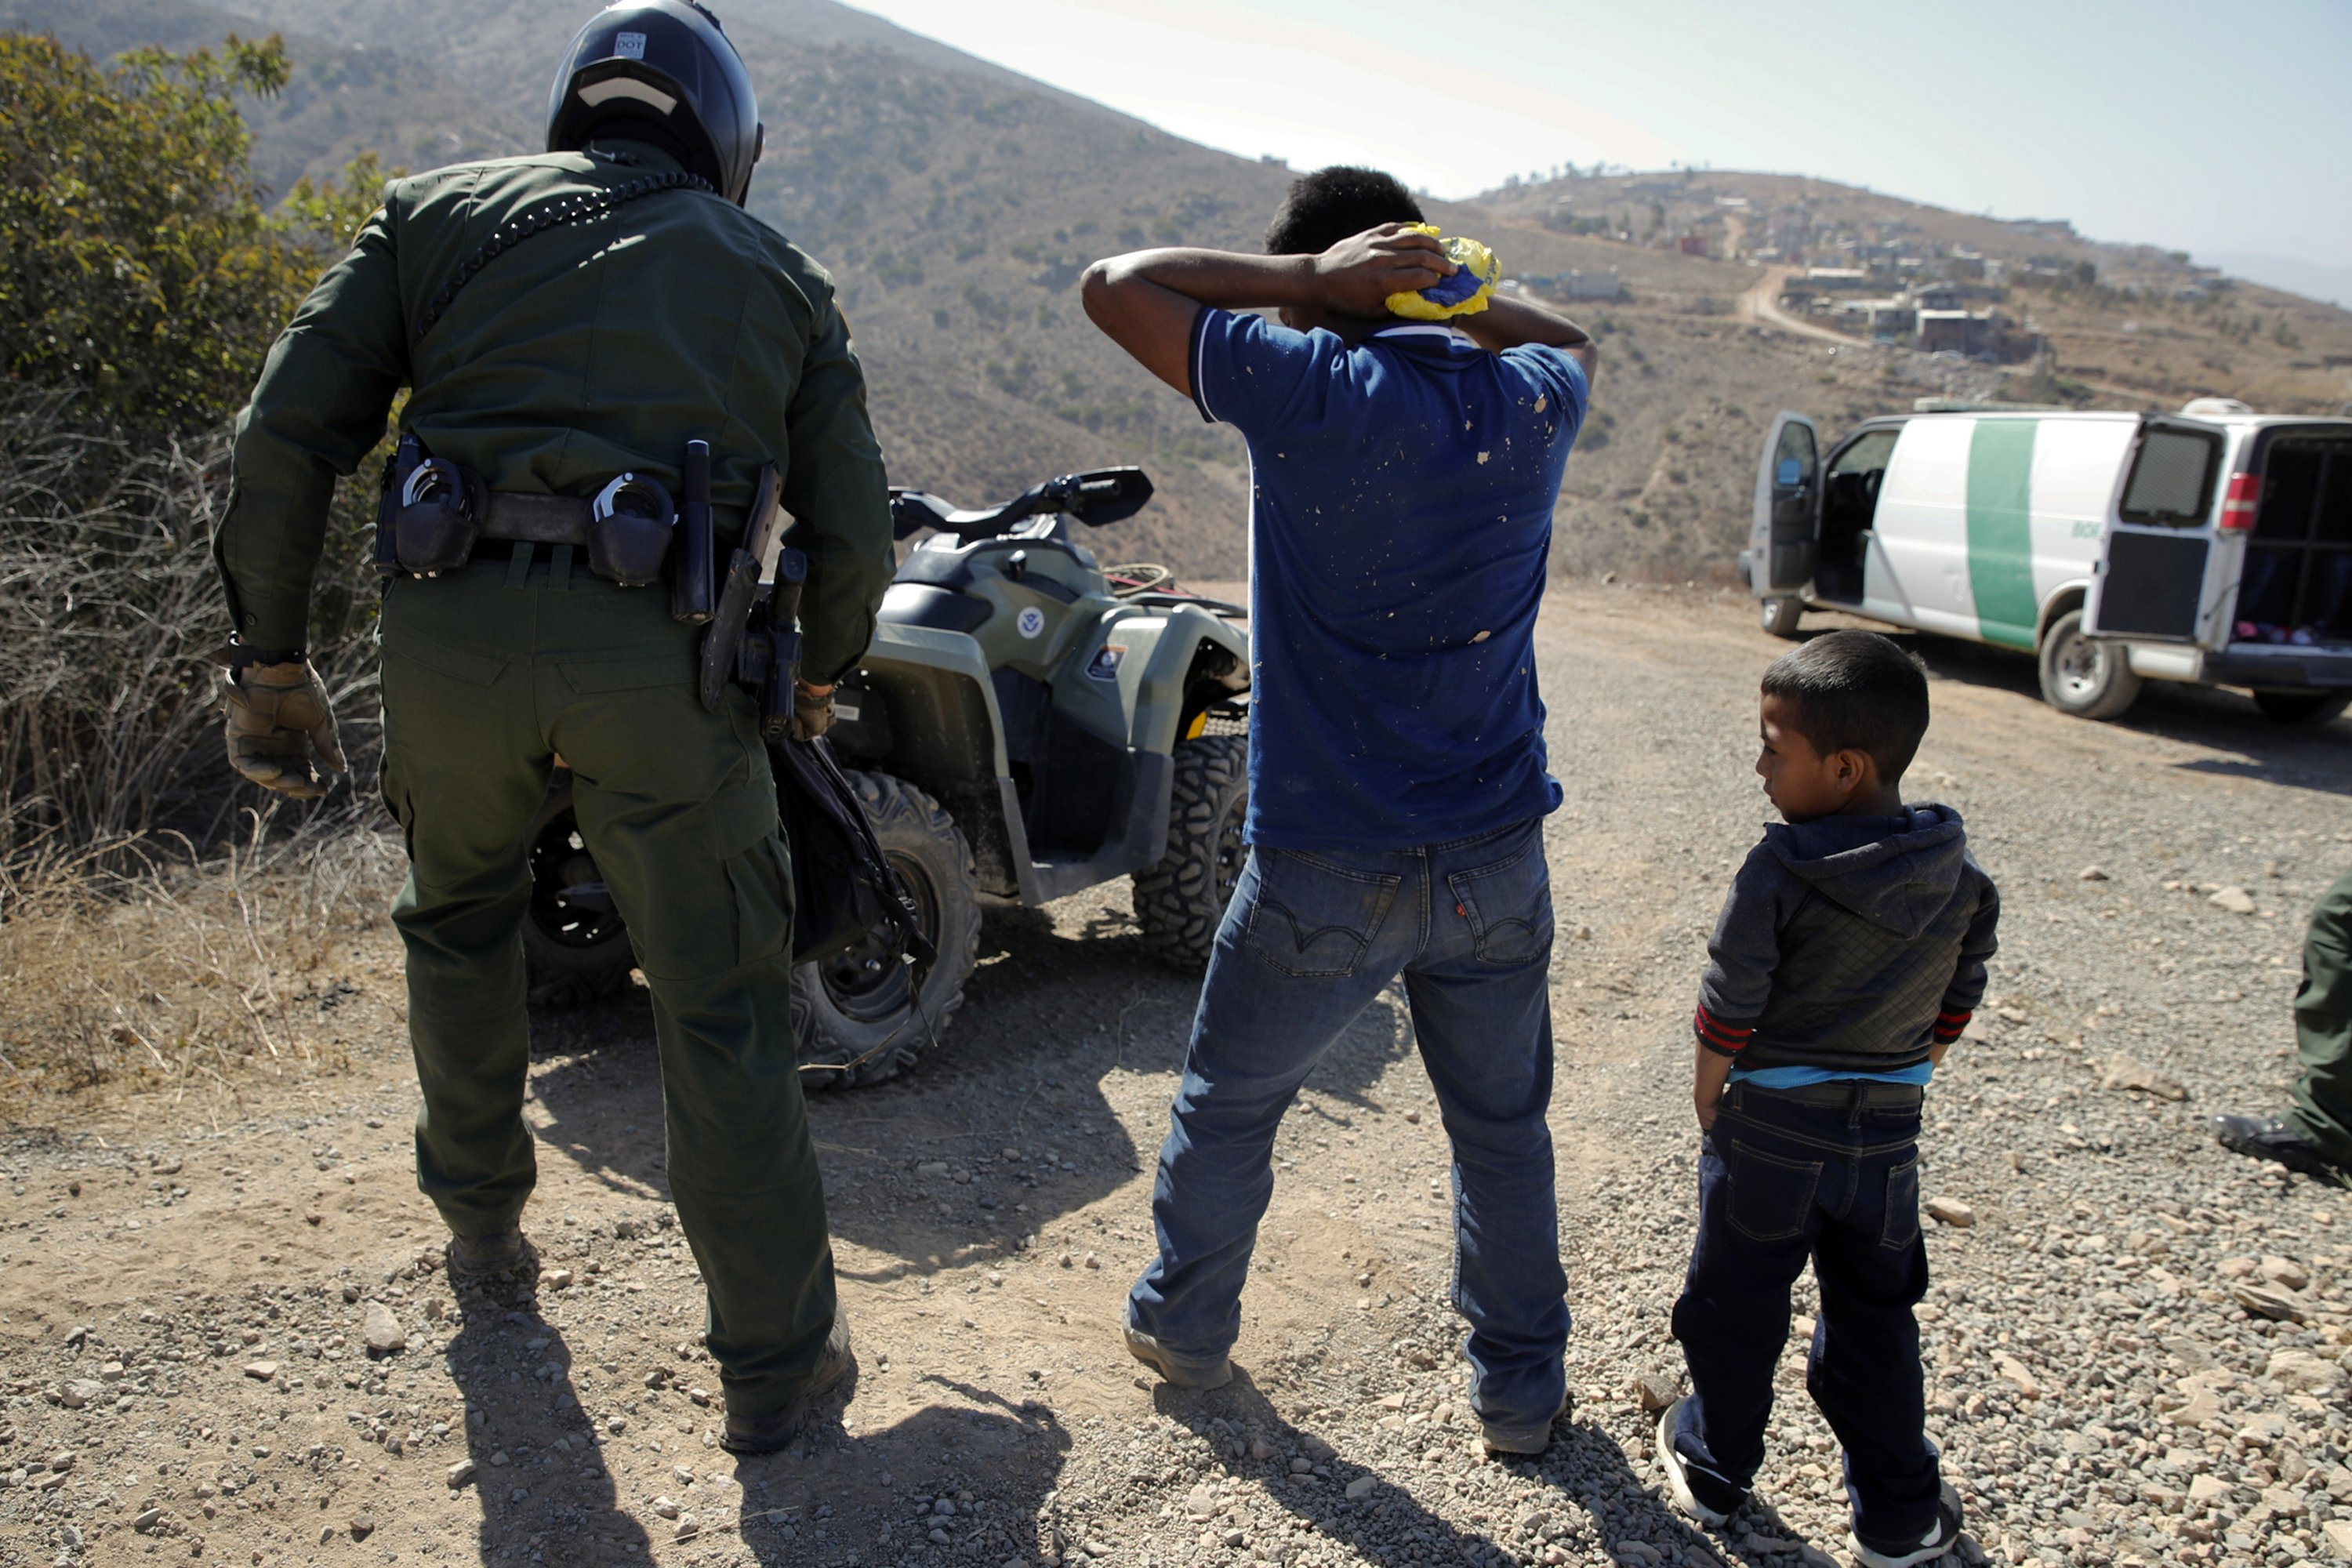 California, long a holdout, adopts mass immigration hearings